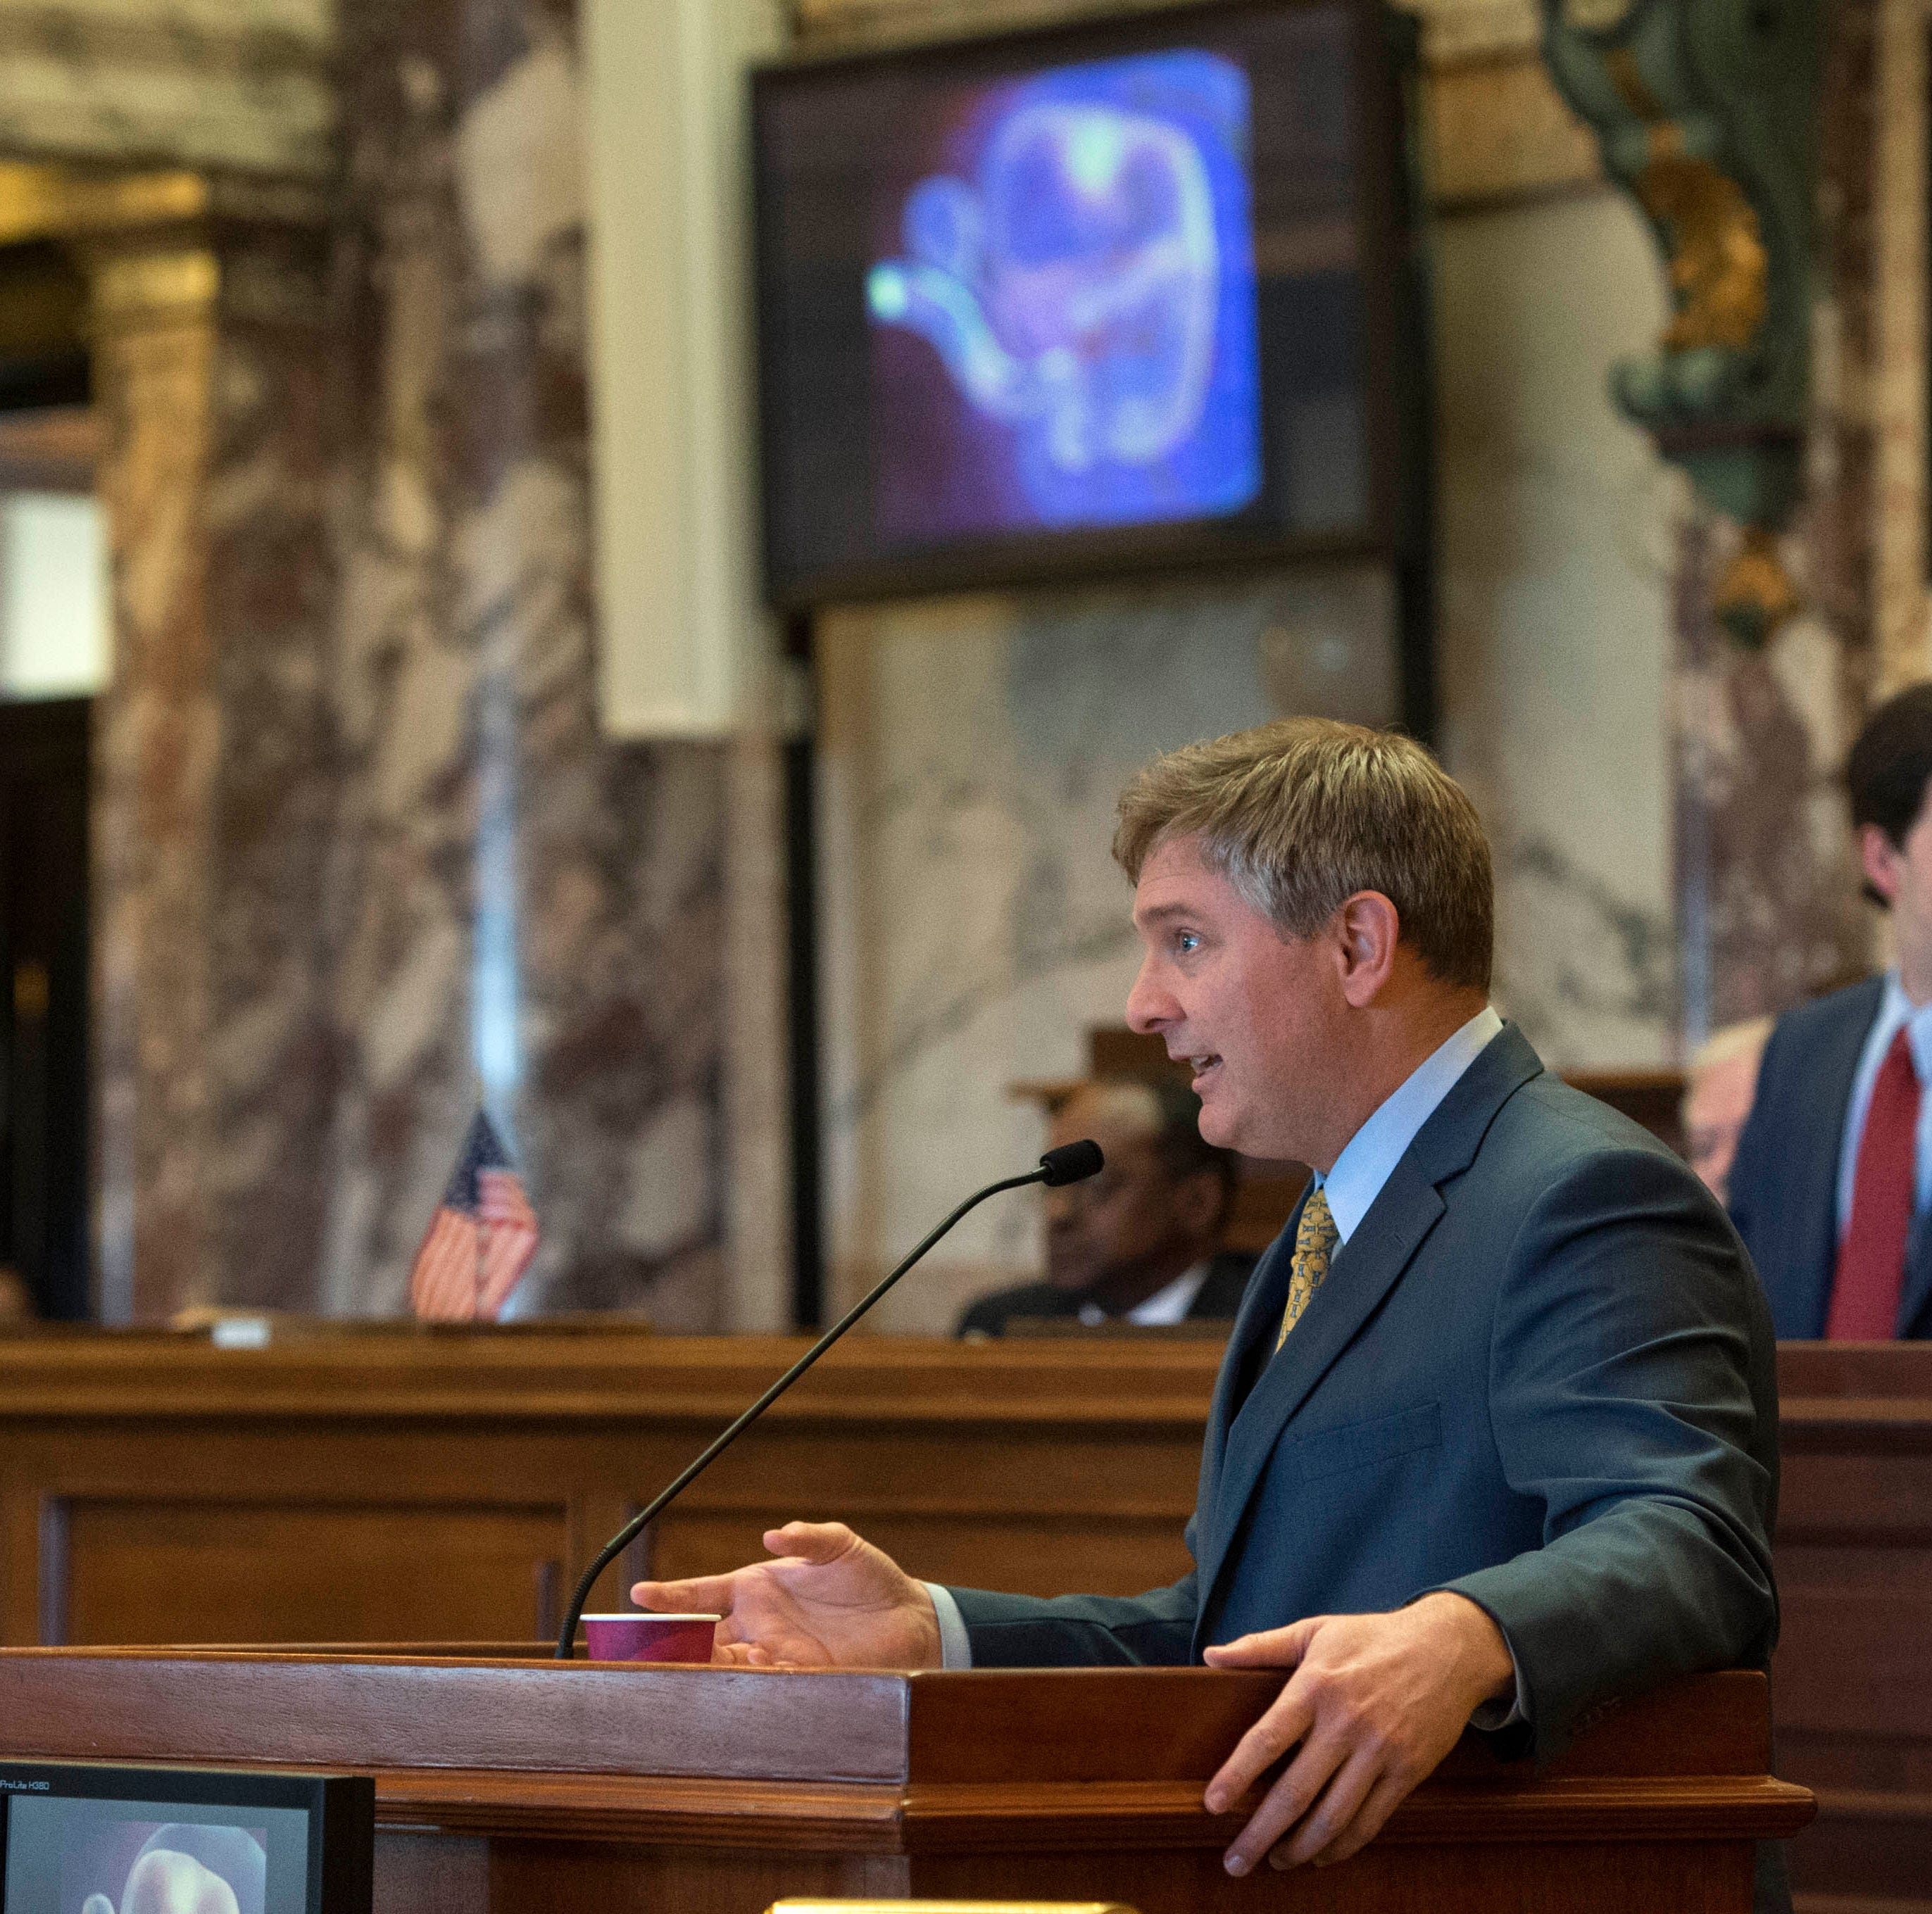 As images of fetuses scroll across monitors in the senate chamber, Sen. Joey Fillingane, R-Sumrall, presents S.B. 2116-also known as the 'Heartbeat bill' to senate members, Wednesday, Feb. 13, 2019 in Jackson. Sen. Derrick Simmons, D-Greenville, presented an amendment to the proposed legislation allowing for special considerations for victims or rape and or incest, but the measure did not pass.